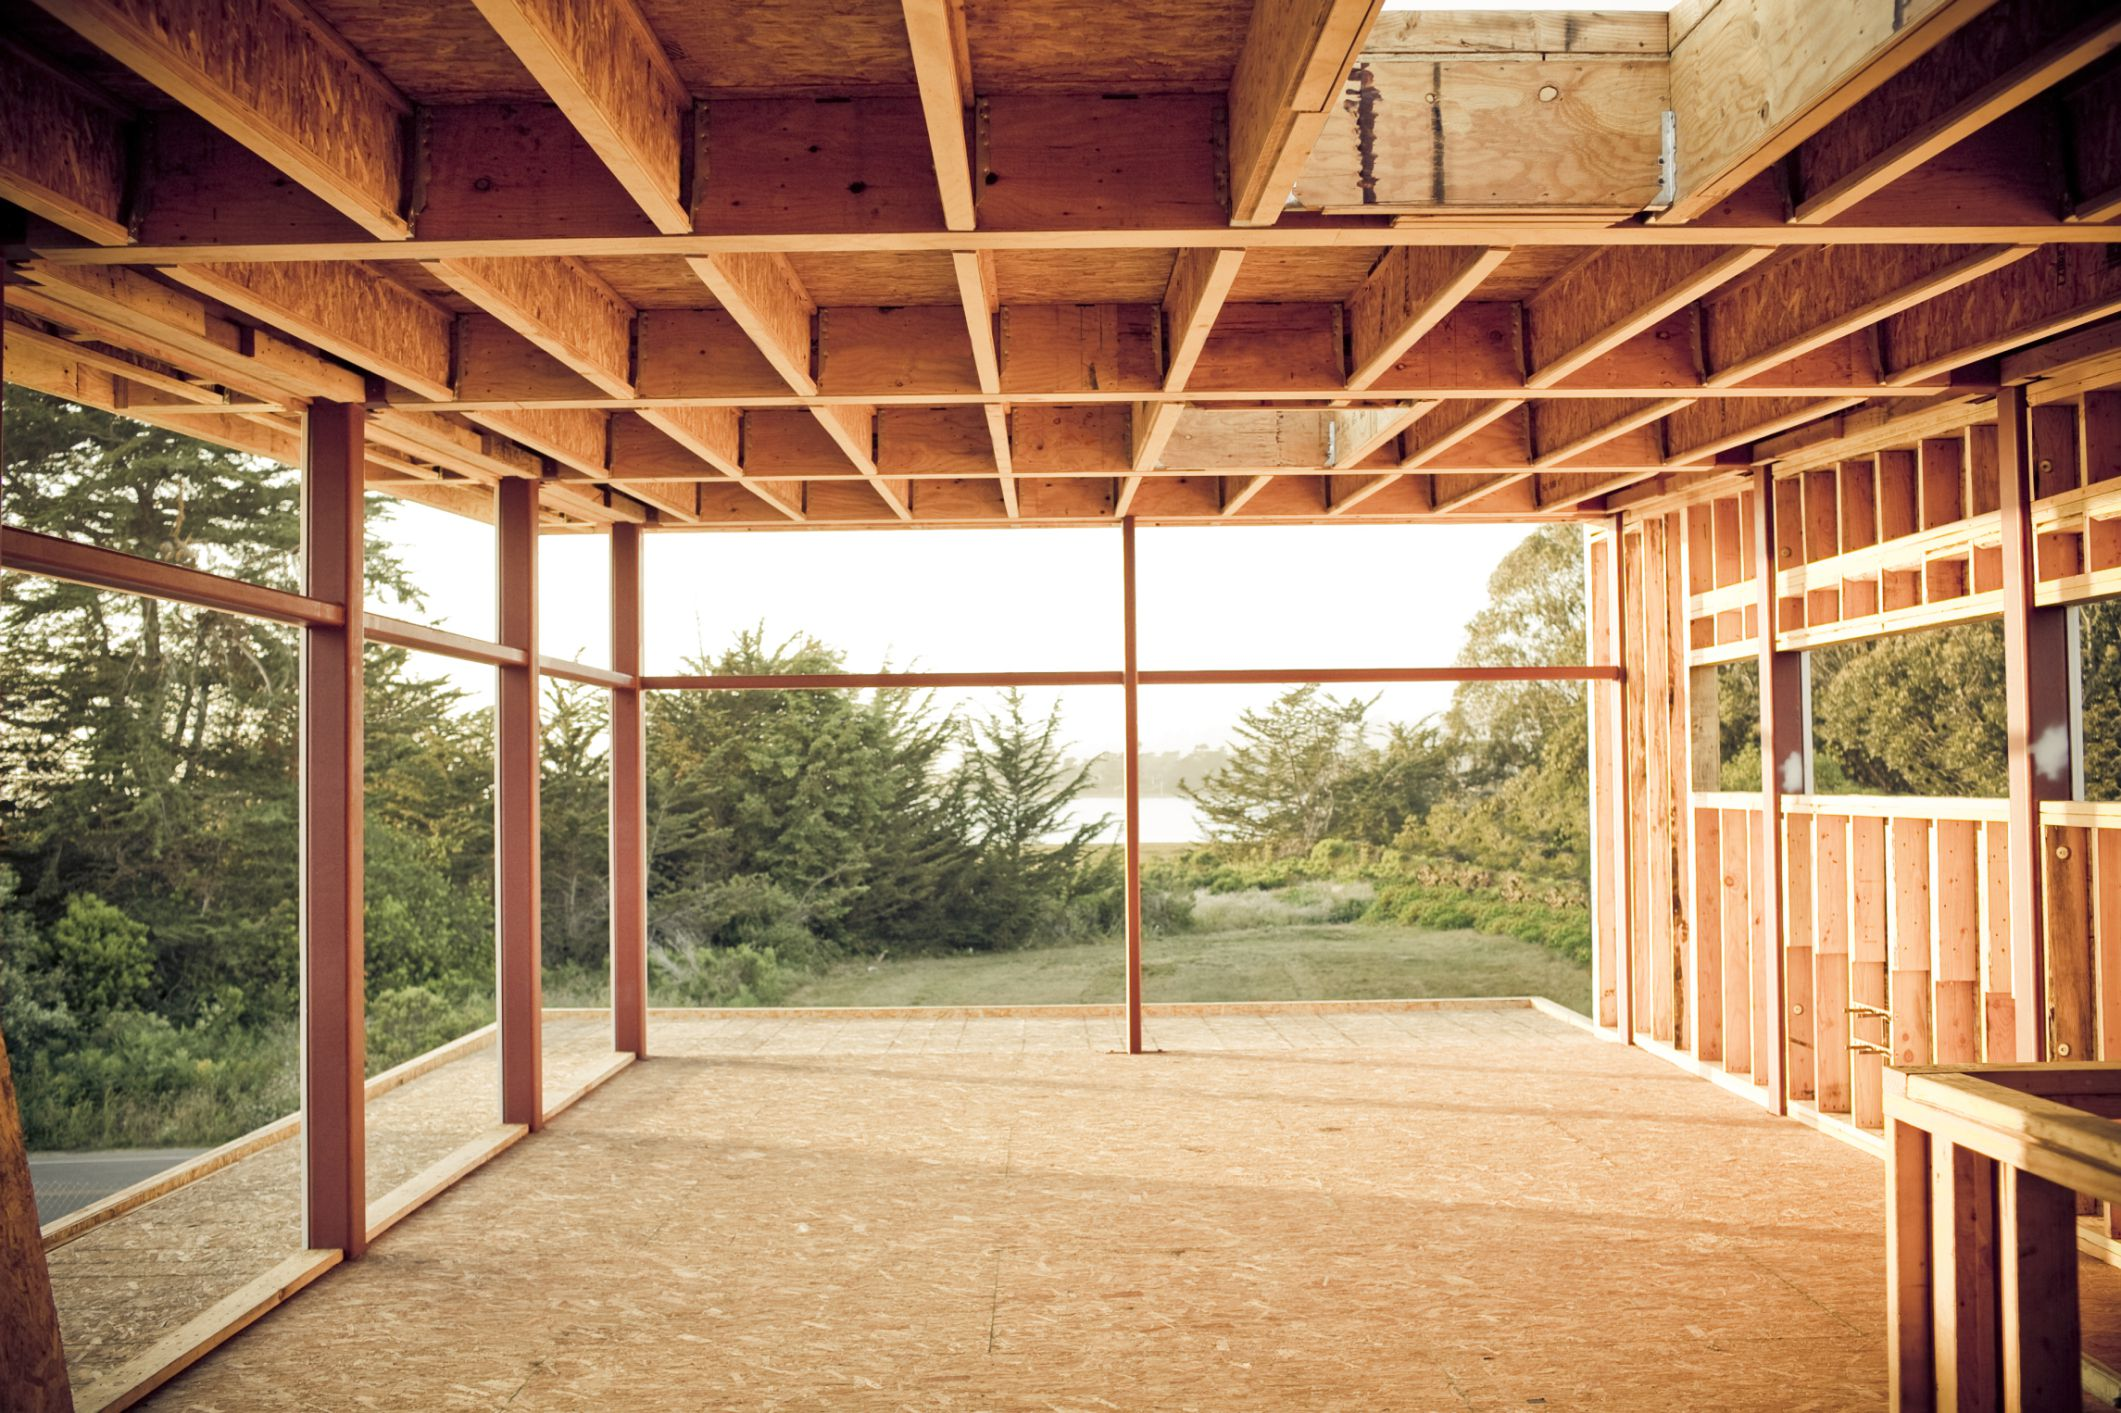 Floor Joist Spans Calculate With Real World Scenarios